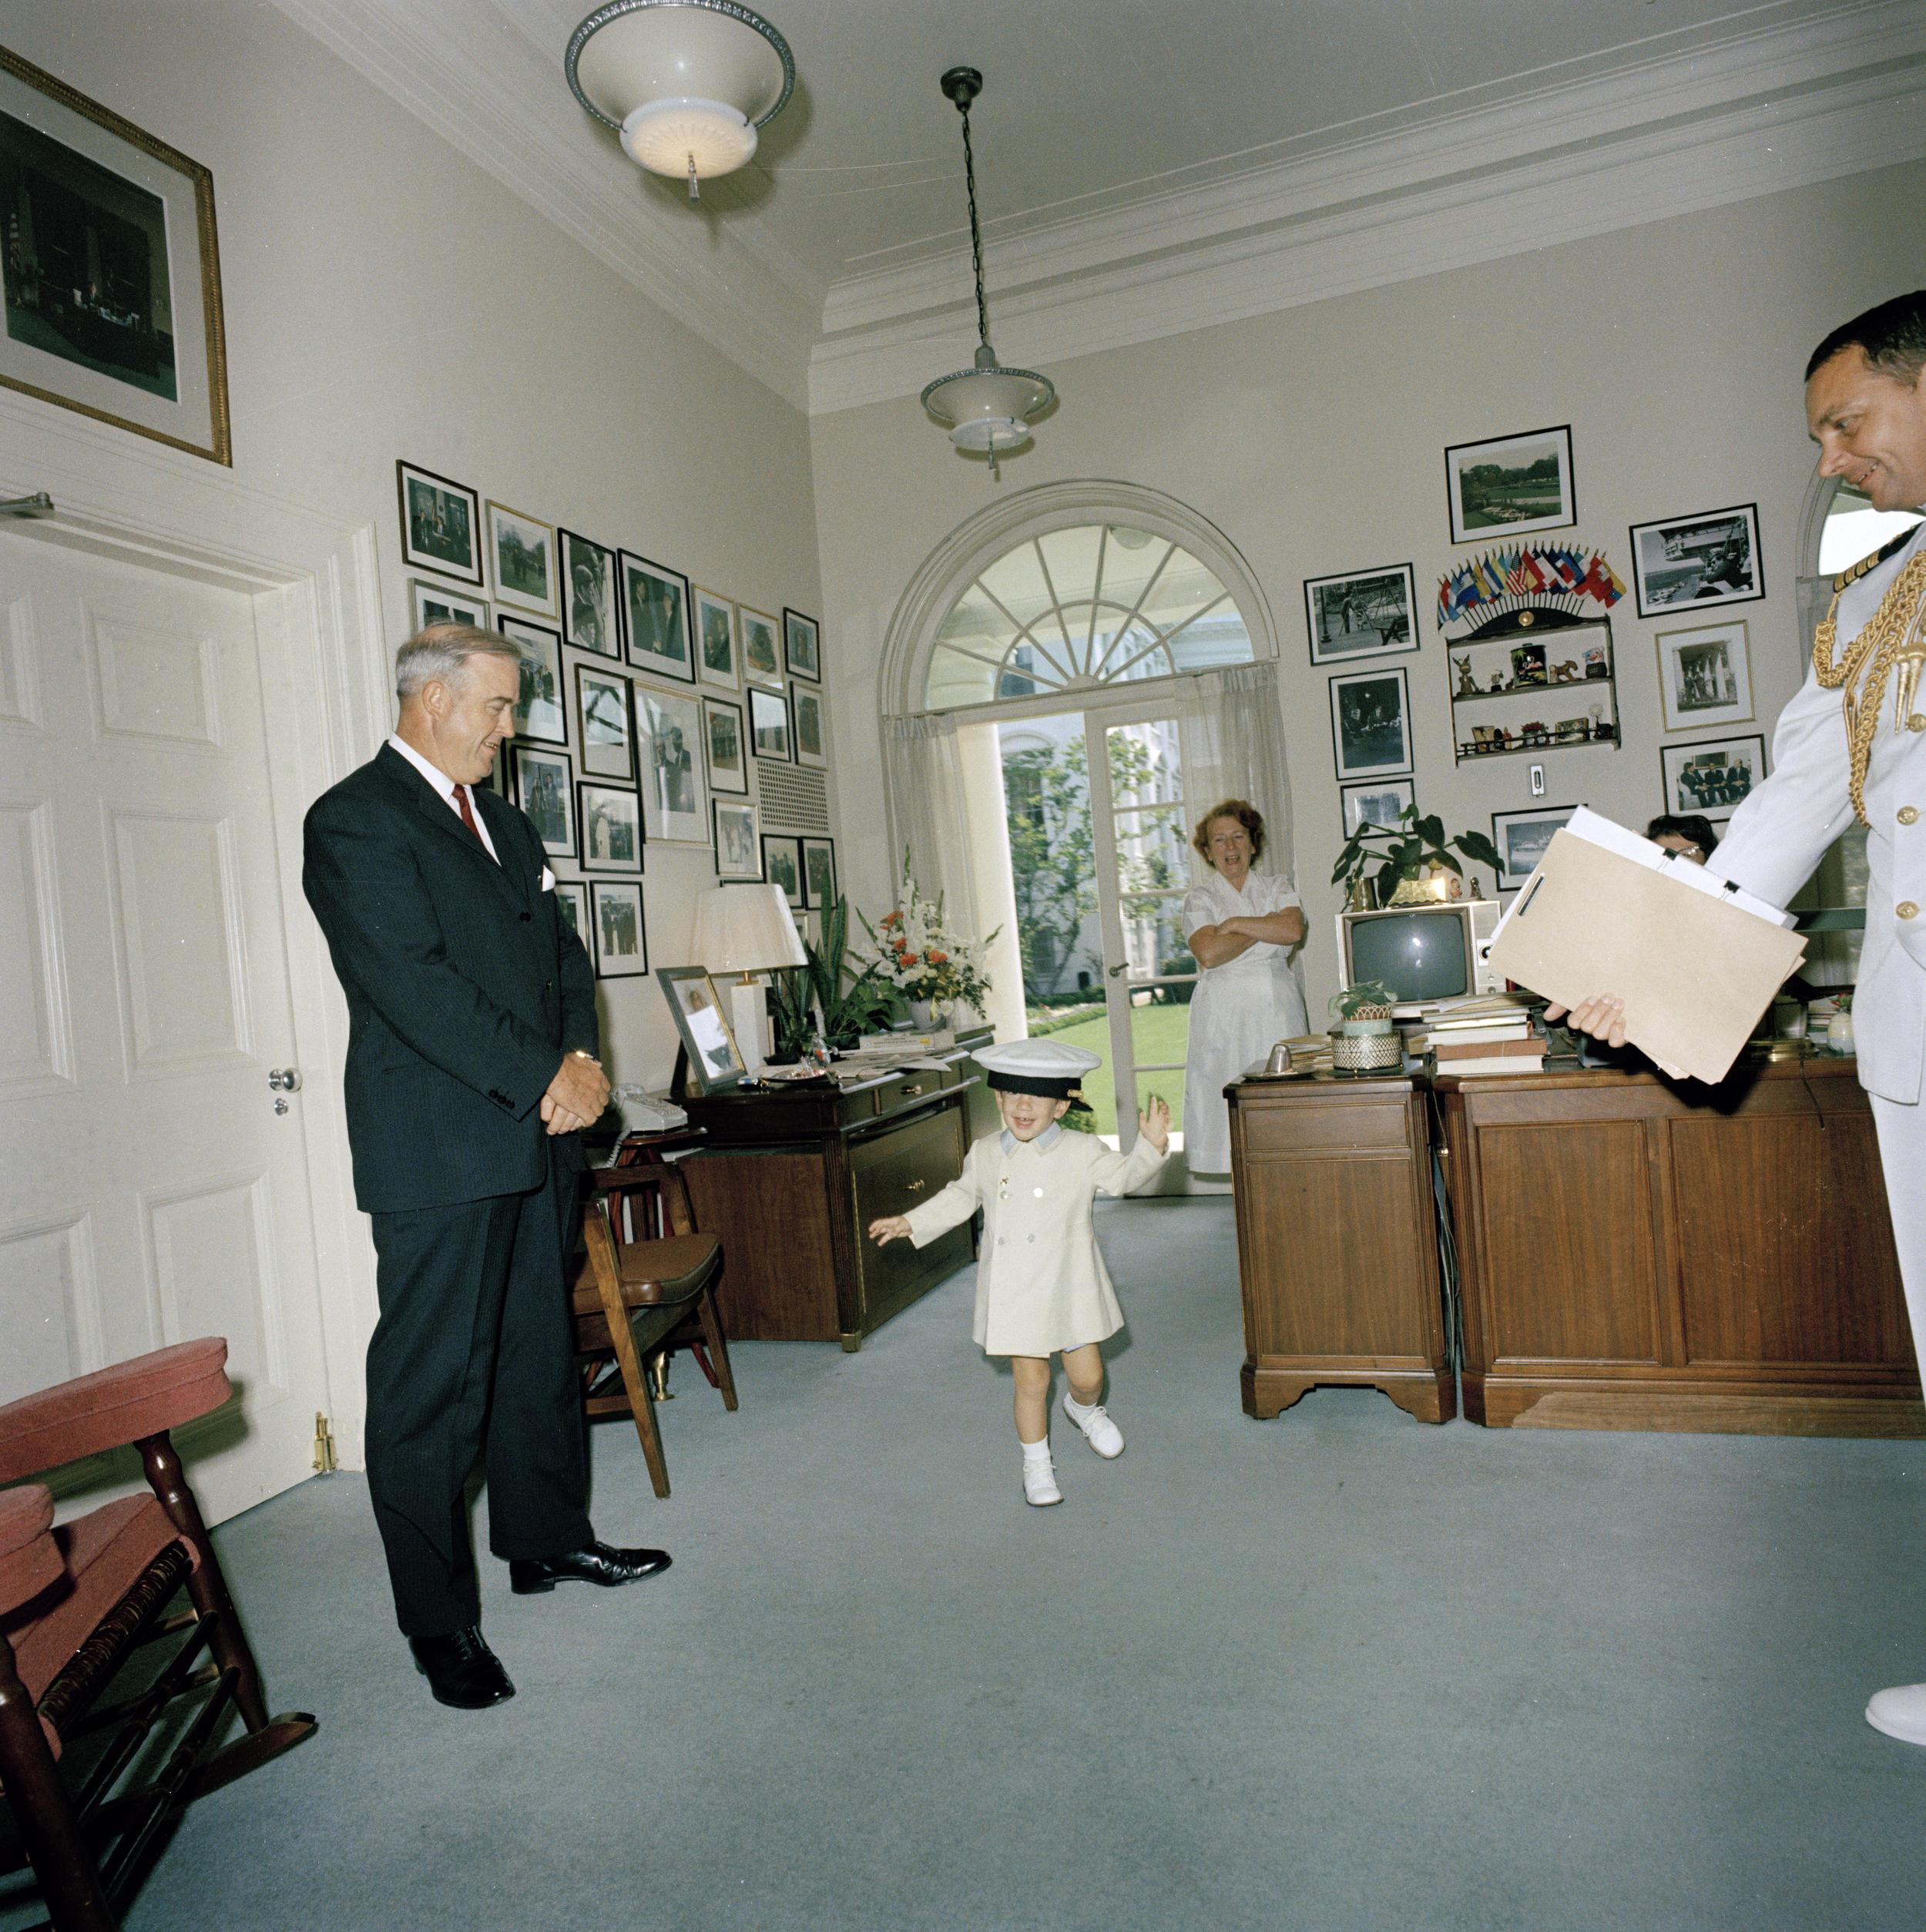 Photo Credit: Cecil Stoughton. White House Photographs. John F. Kennedy Presidential Library and Museum, Boston.